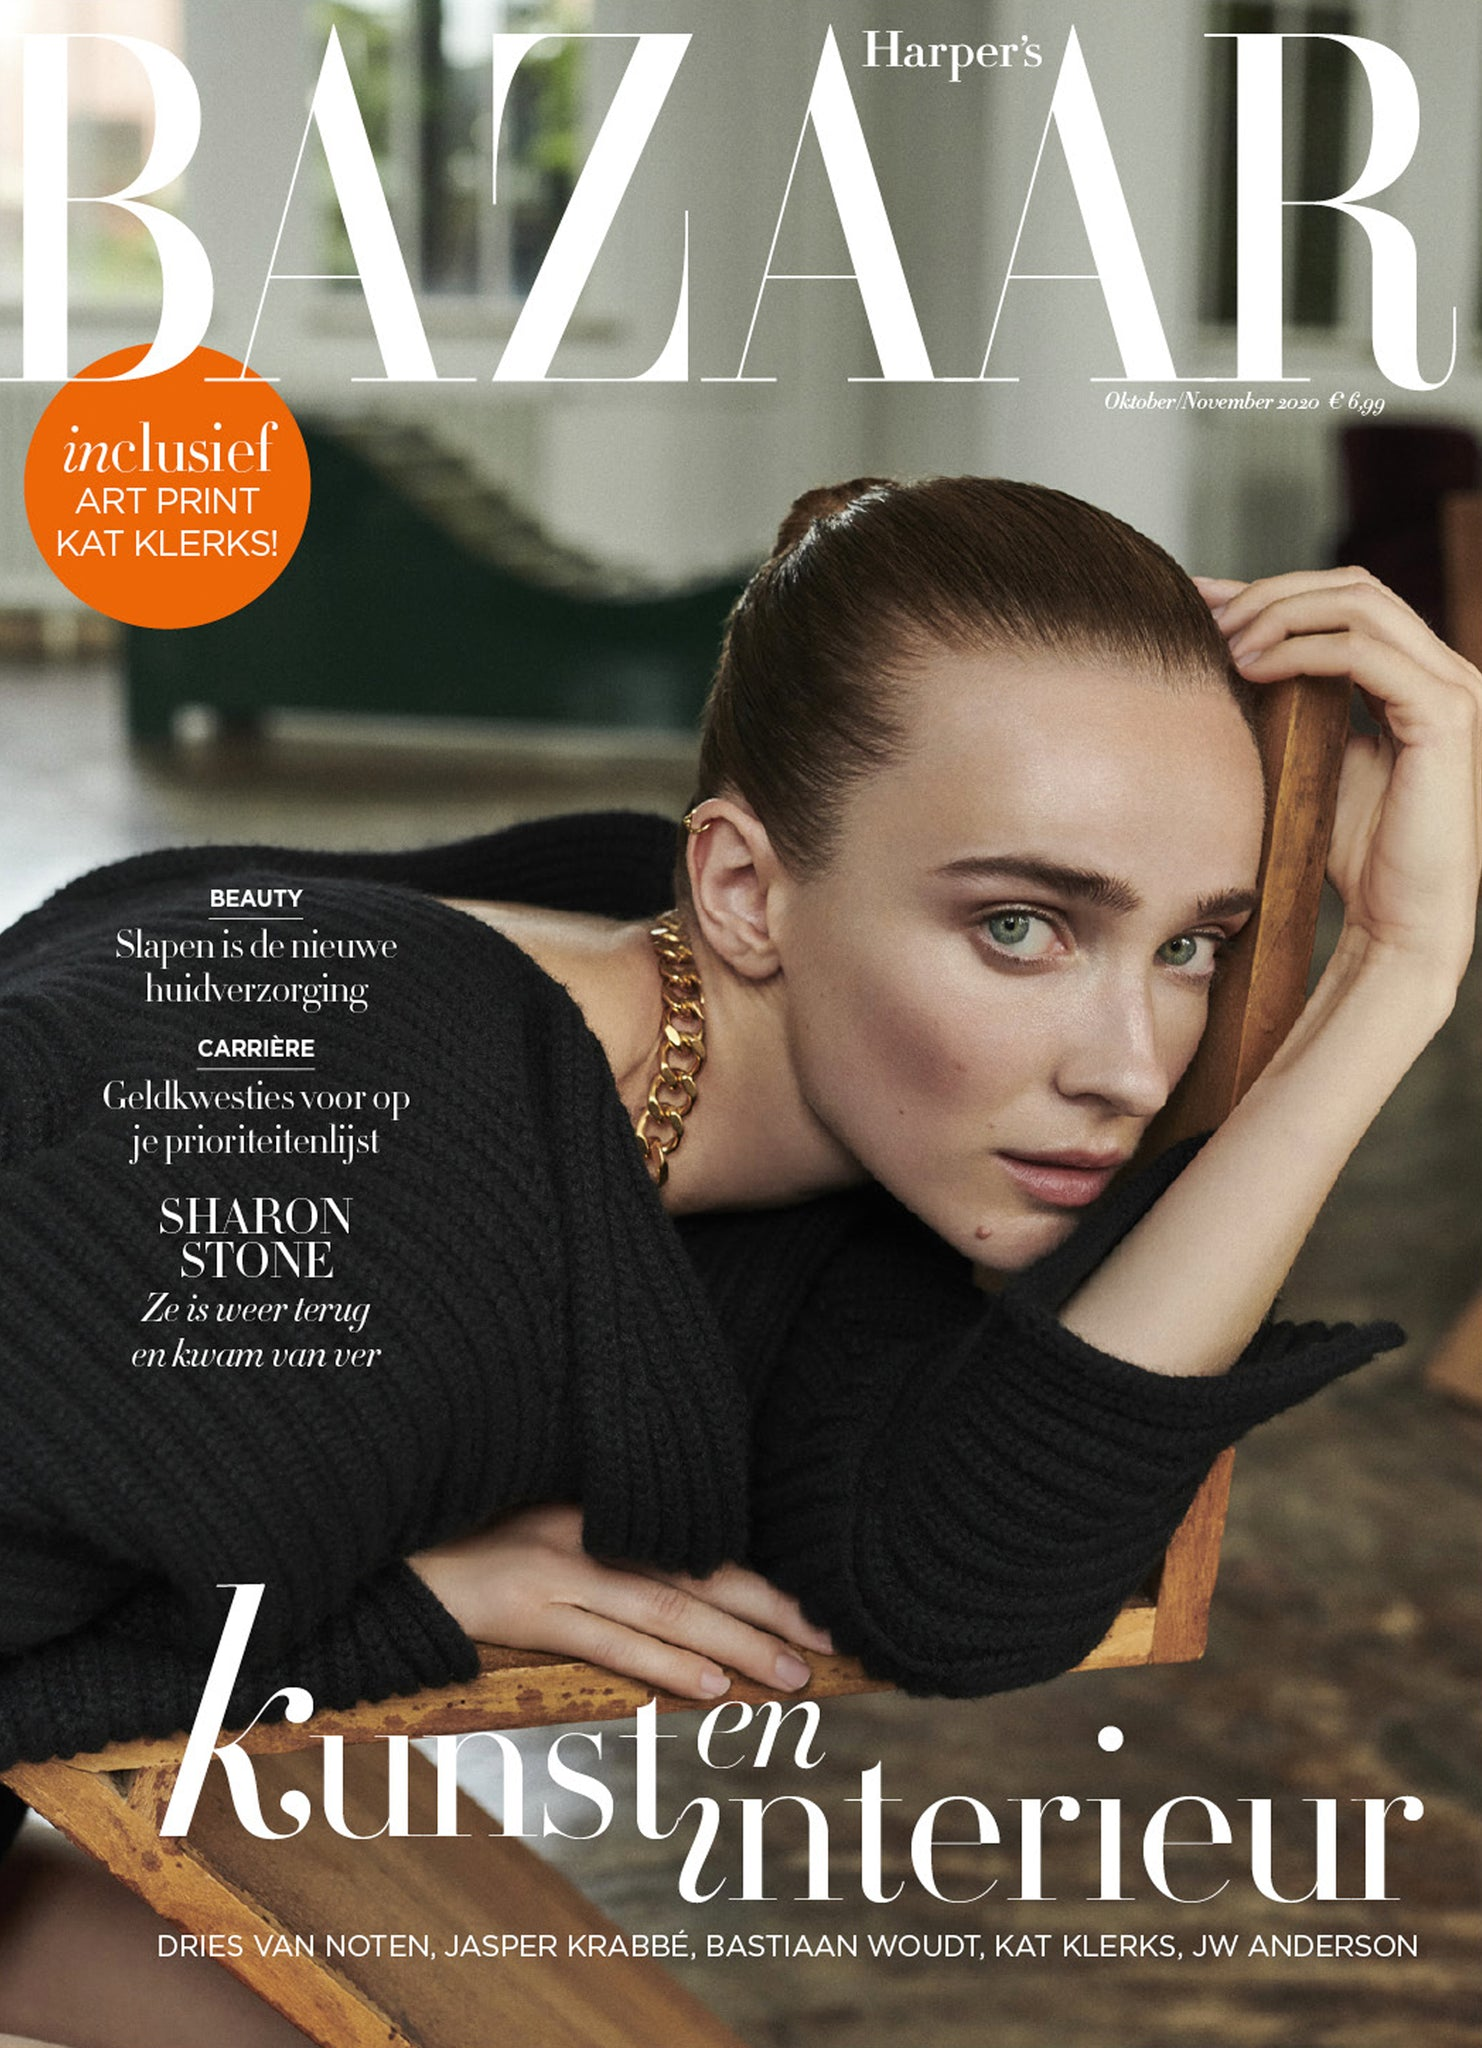 Harper's Bazaar September